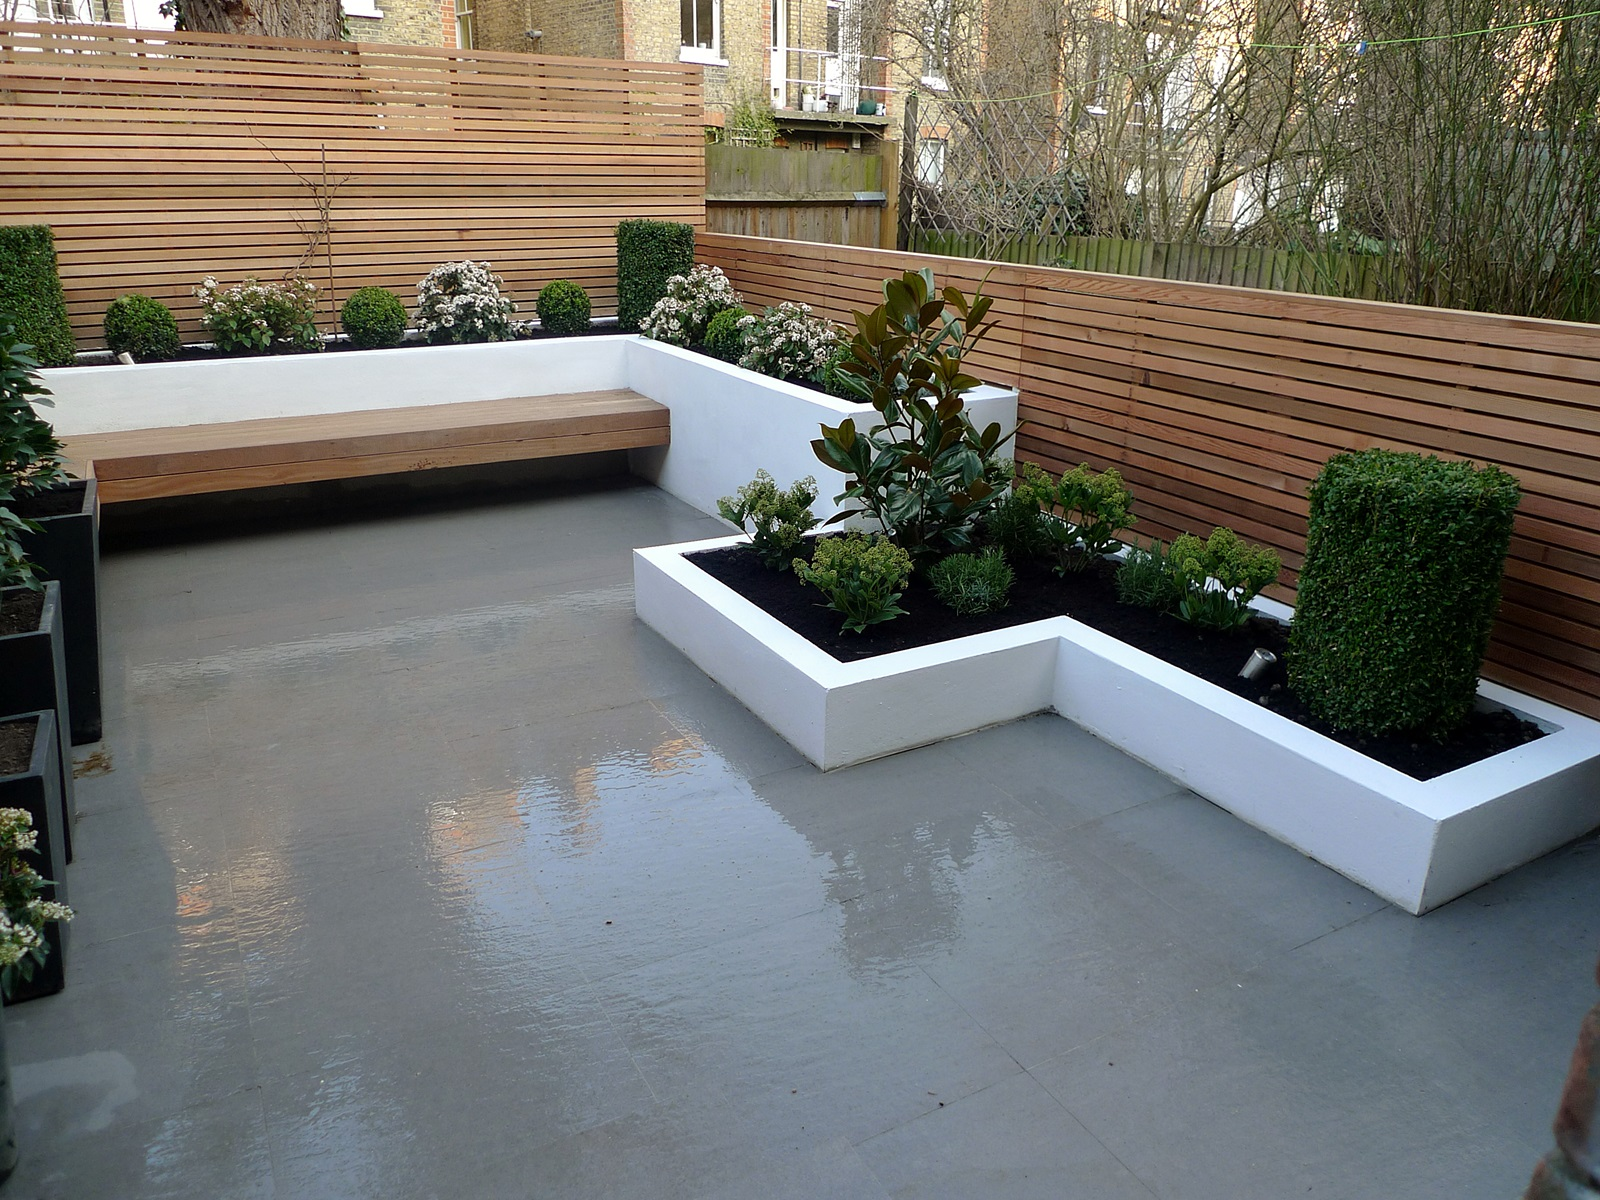 Garden design designer clapham balham battersea small low maintenance modern garden (12)